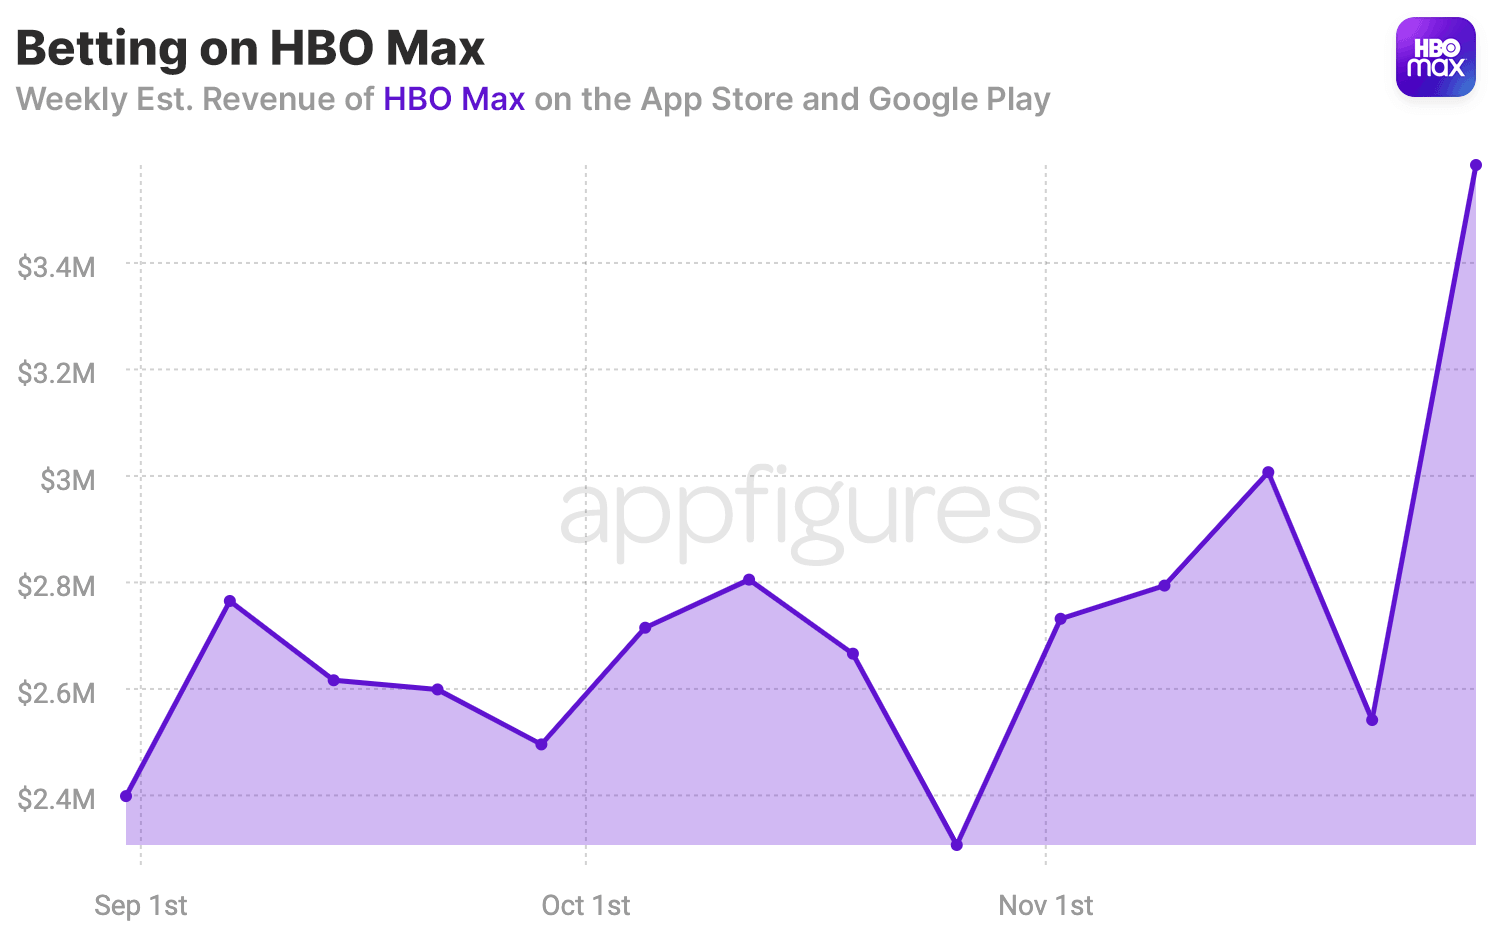 HBO Max Revenue on the App Store and Google Play